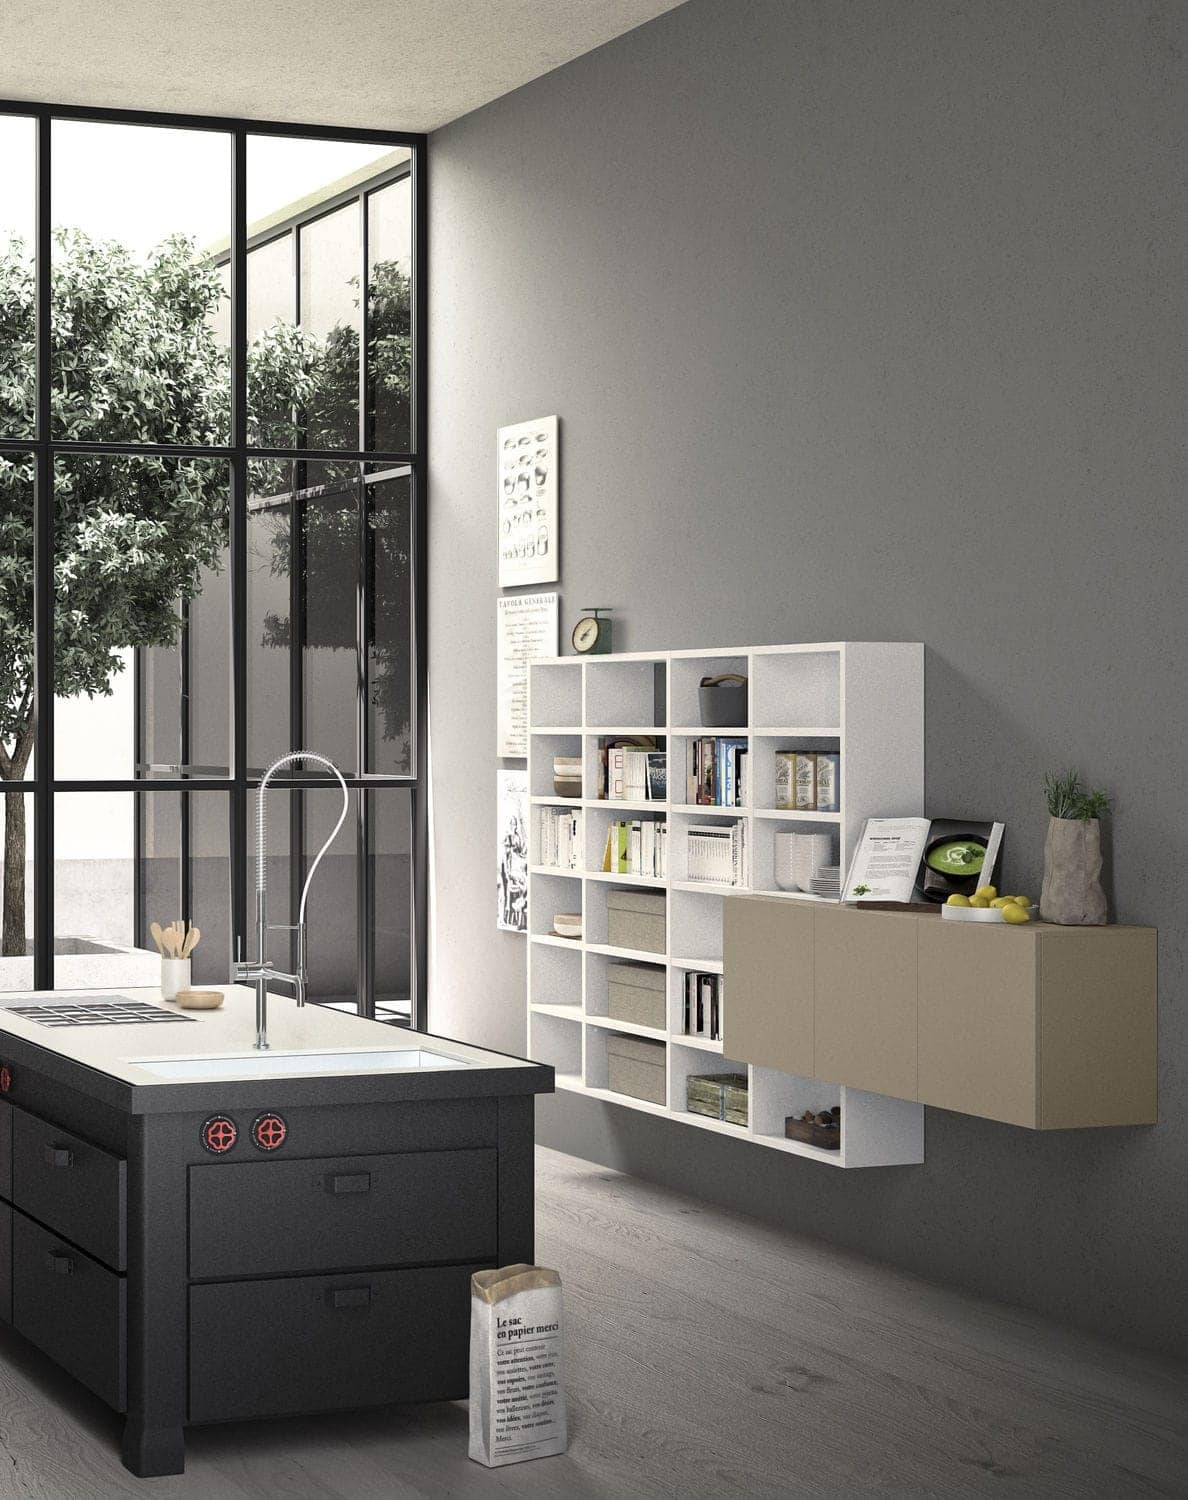 Spazioteca SP019, Modular bookcase in wood, made to measure, for office